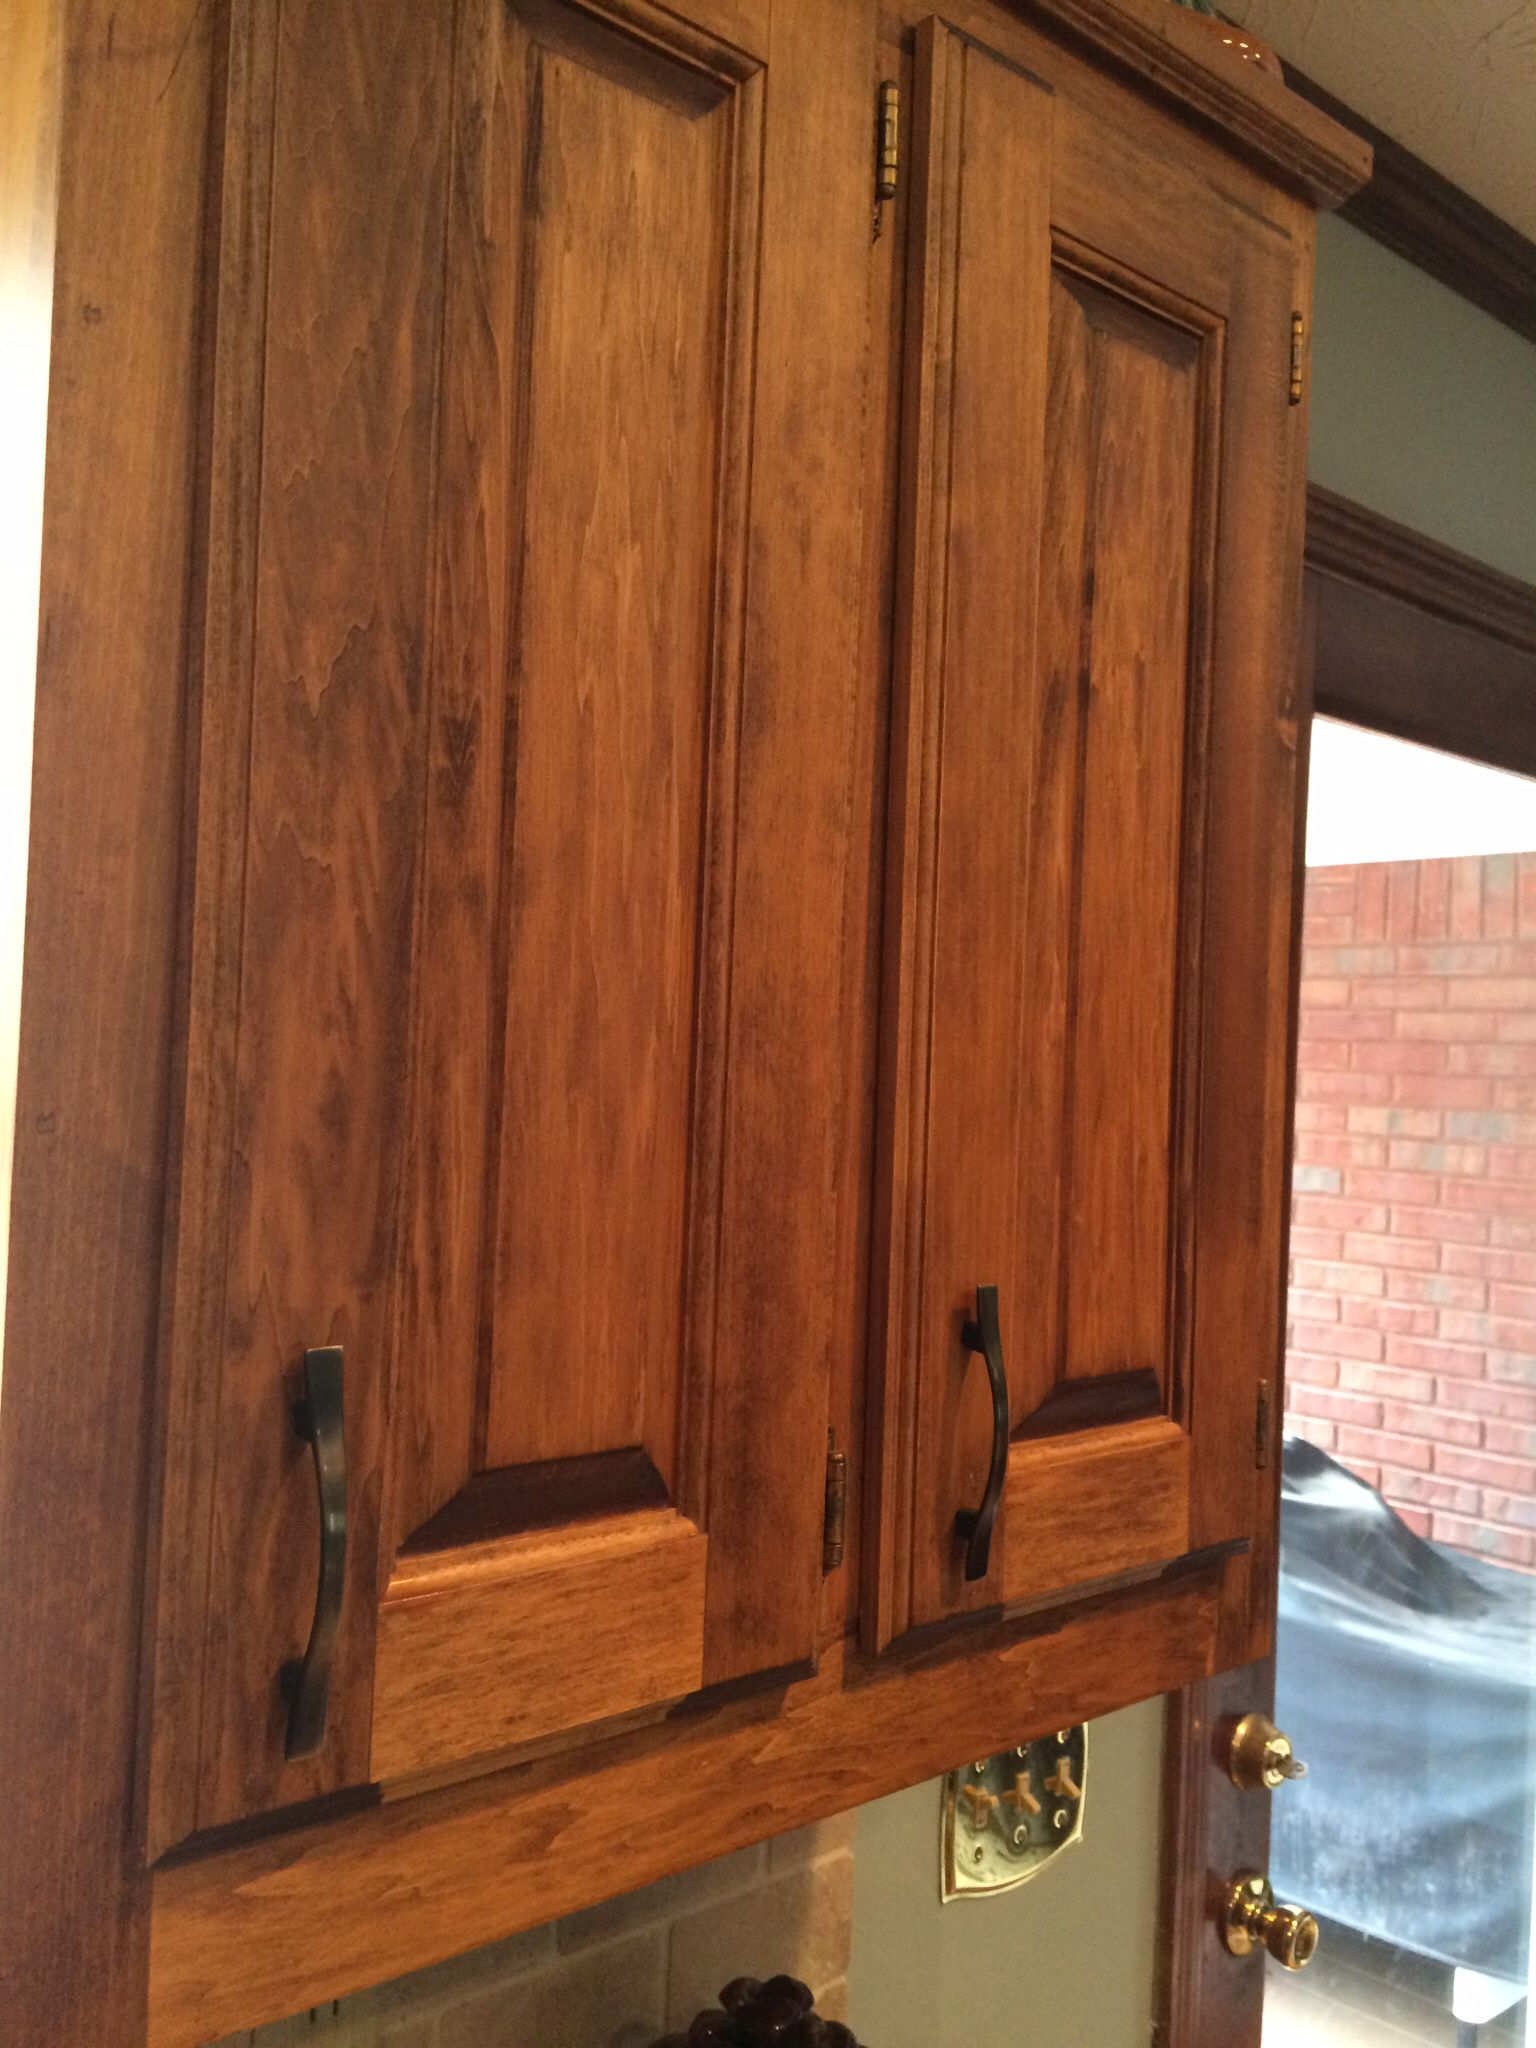 Basswood kitchen cabinets Rustic kitchen cabinets Matte finished